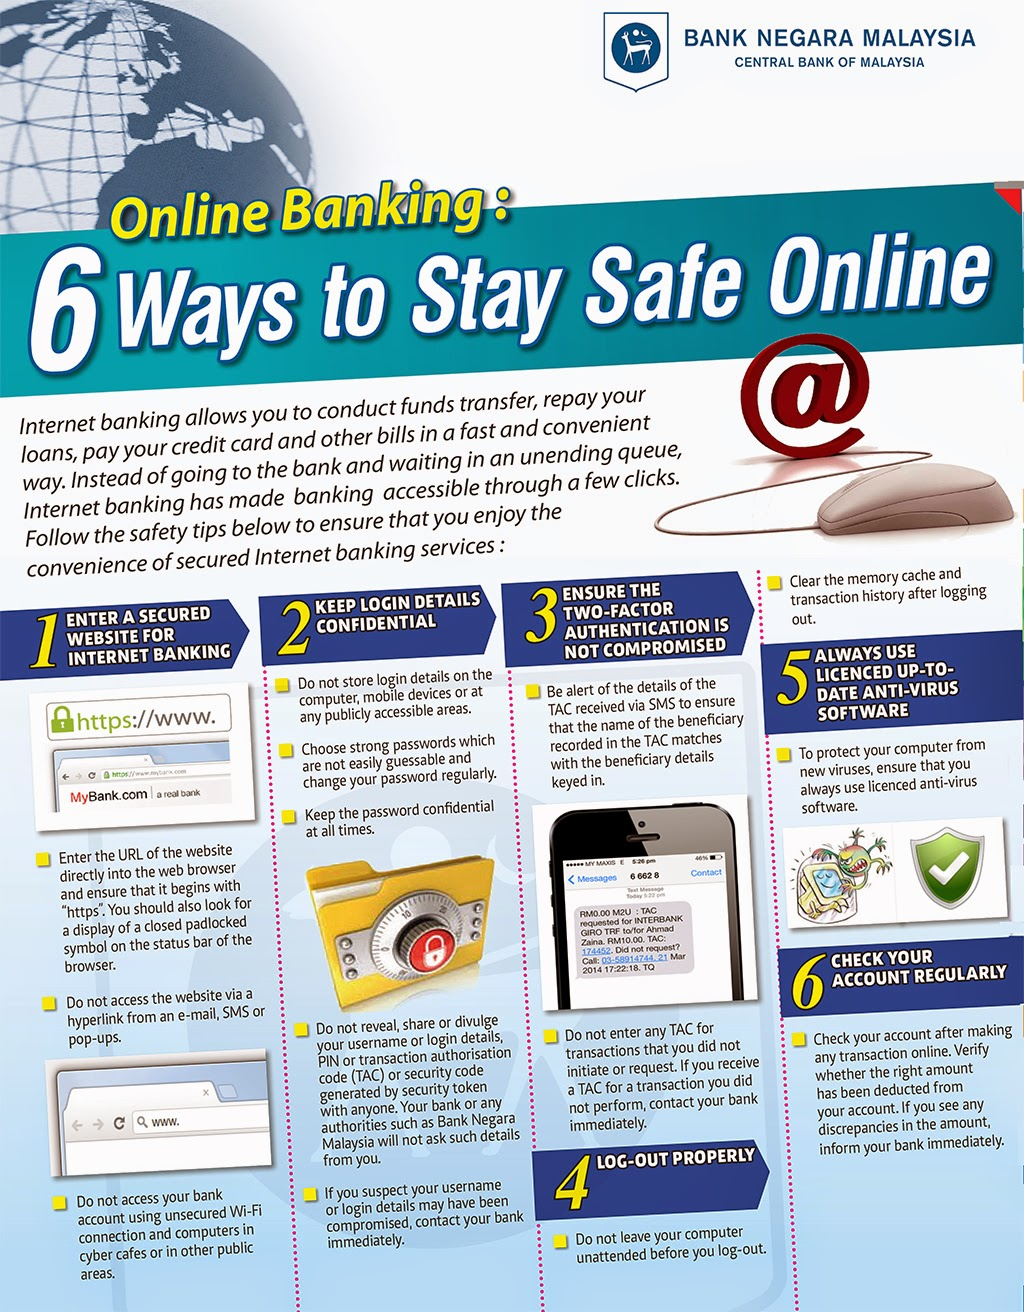 Bank Negara Malaysia's Guide to Safe Online Banking